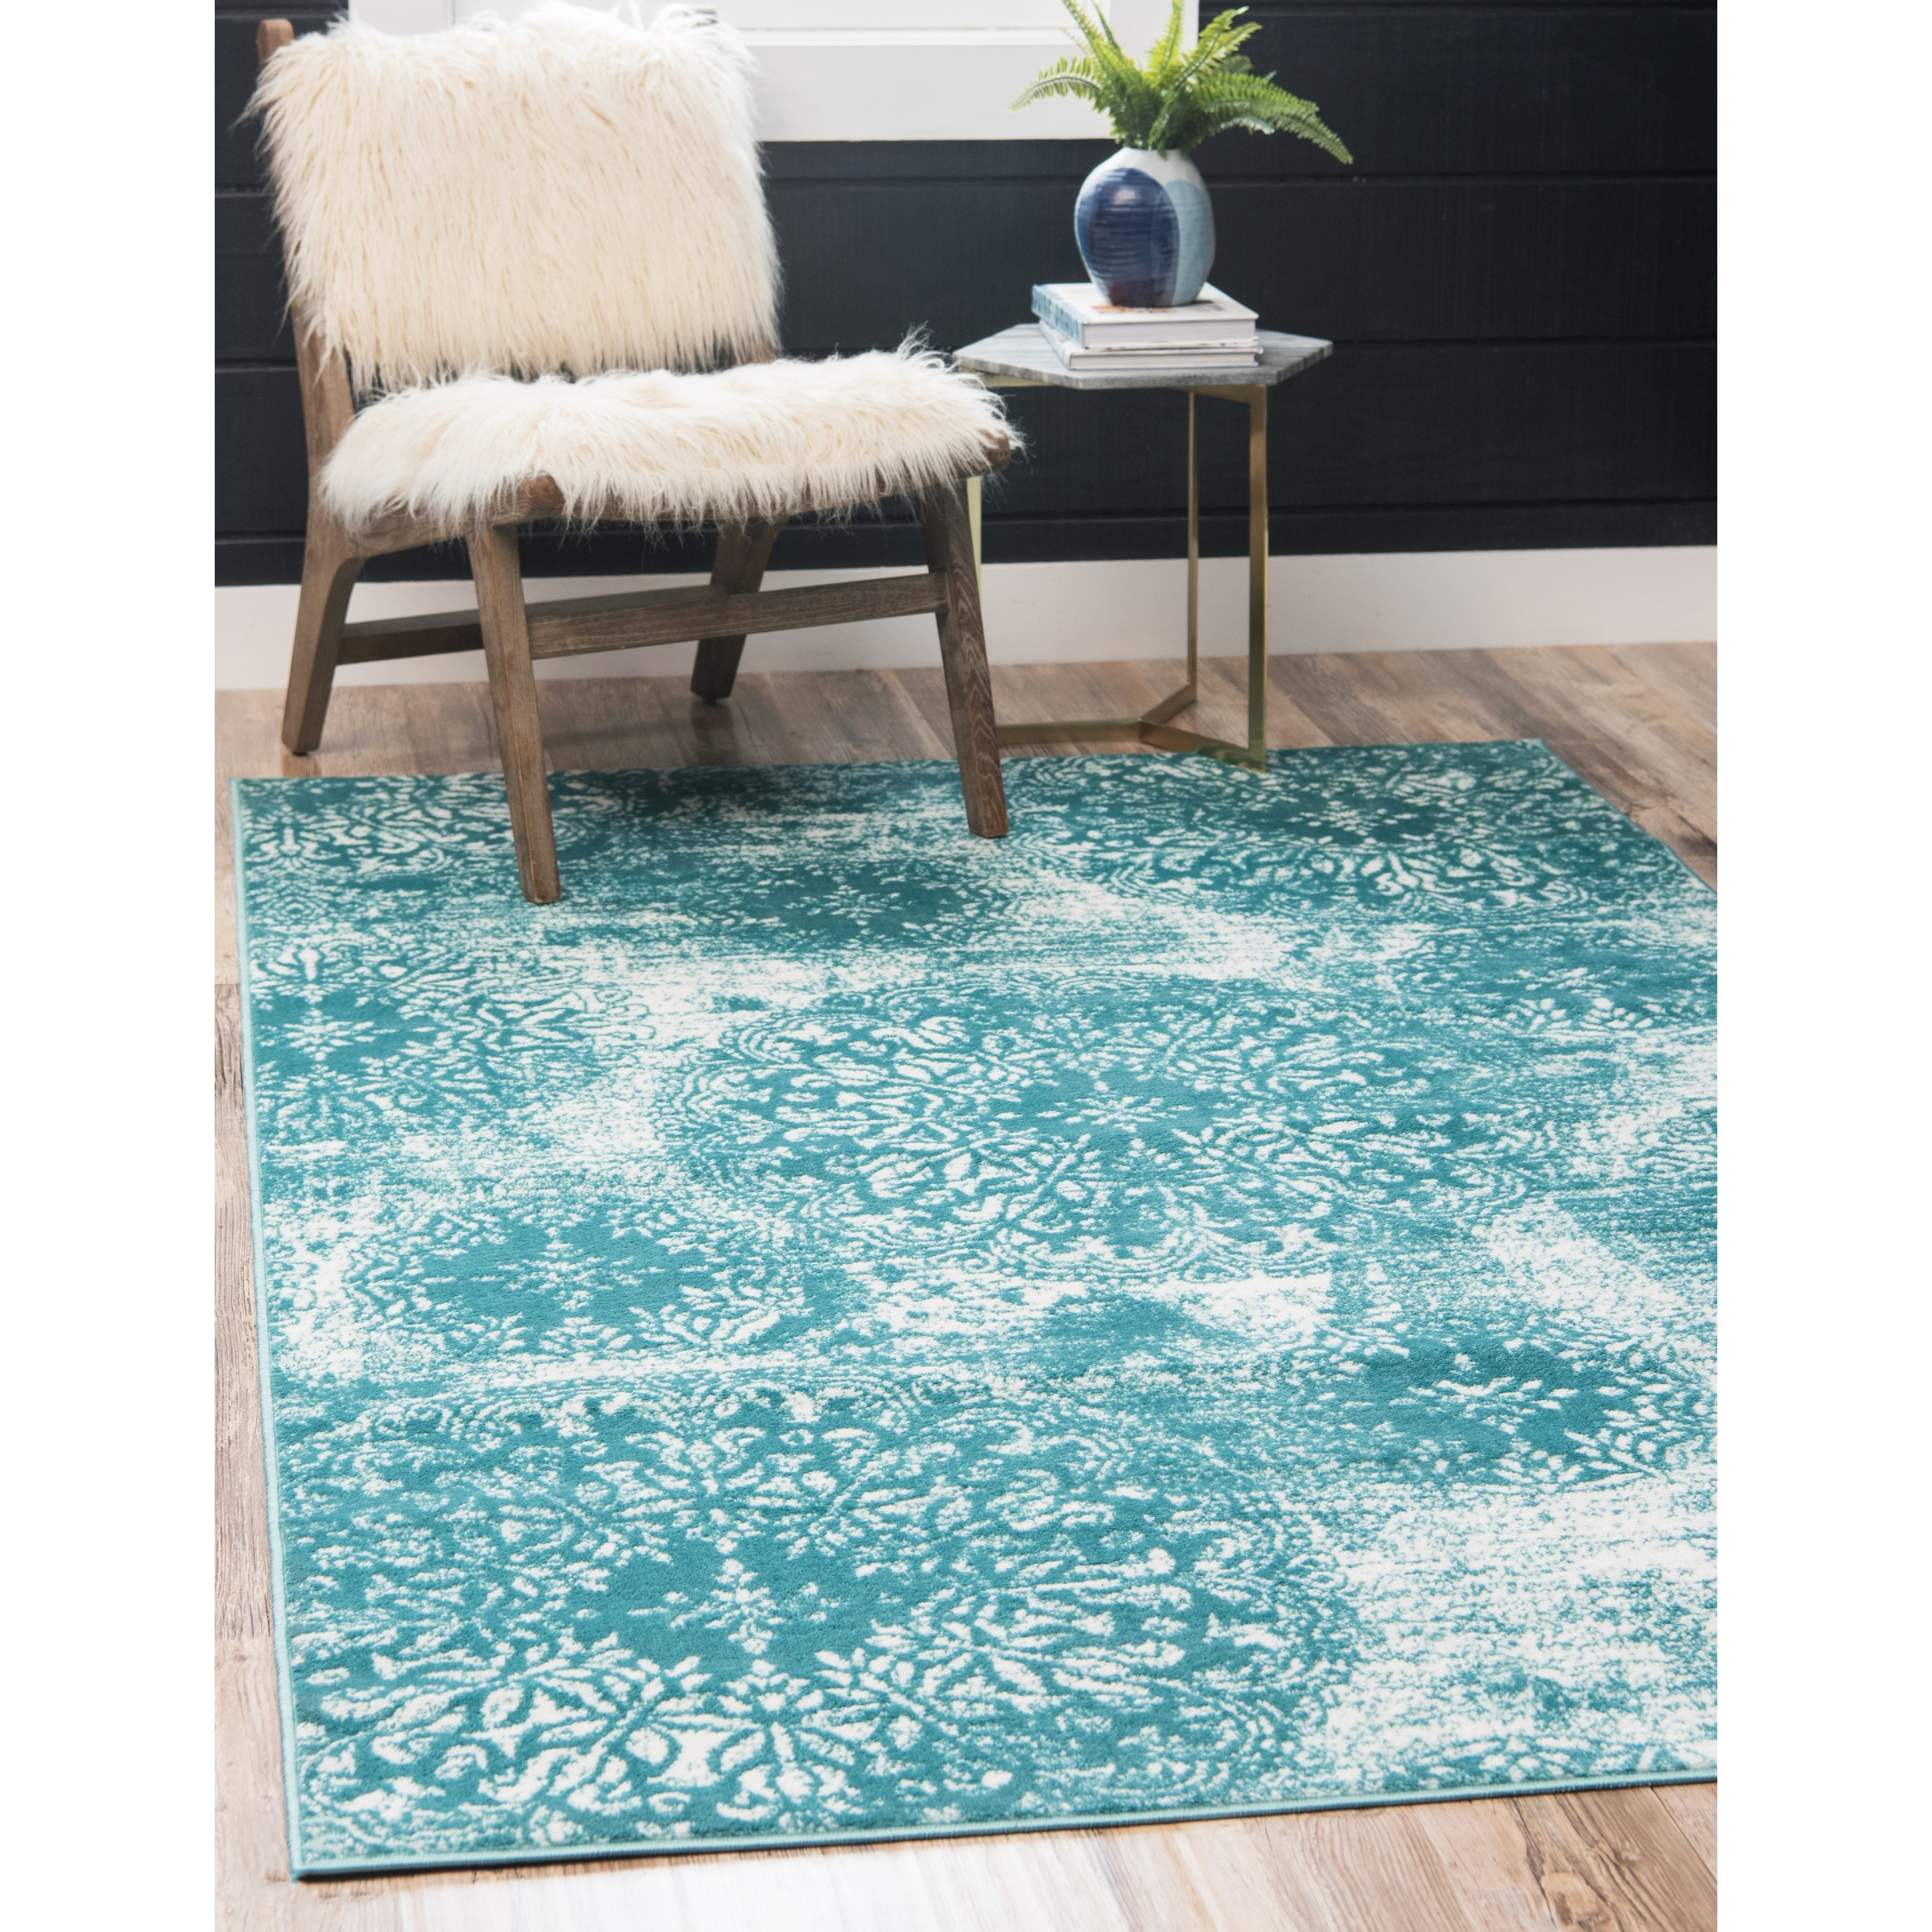 Teal Rugs & Area Rugs For Less | Find Great Home Decor Deals ...